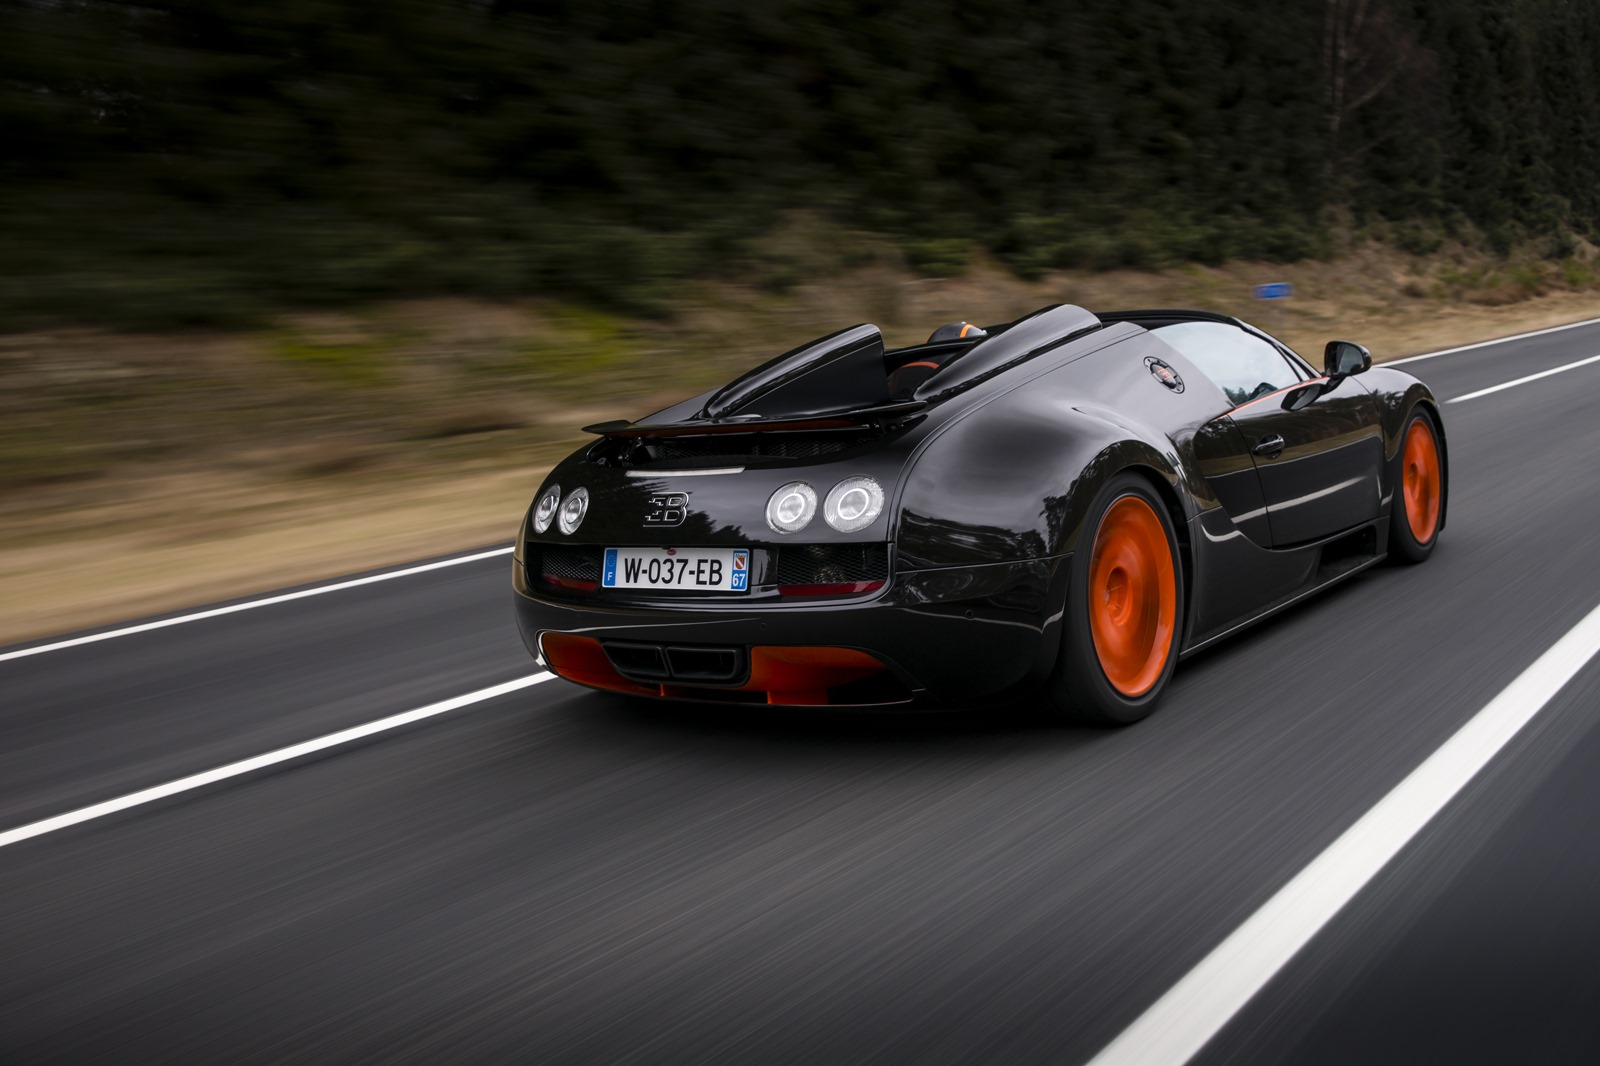 all cars nz 2013 bugatti veyron gs vitesse sets new open top speed record at 409kmh 254mph. Black Bedroom Furniture Sets. Home Design Ideas